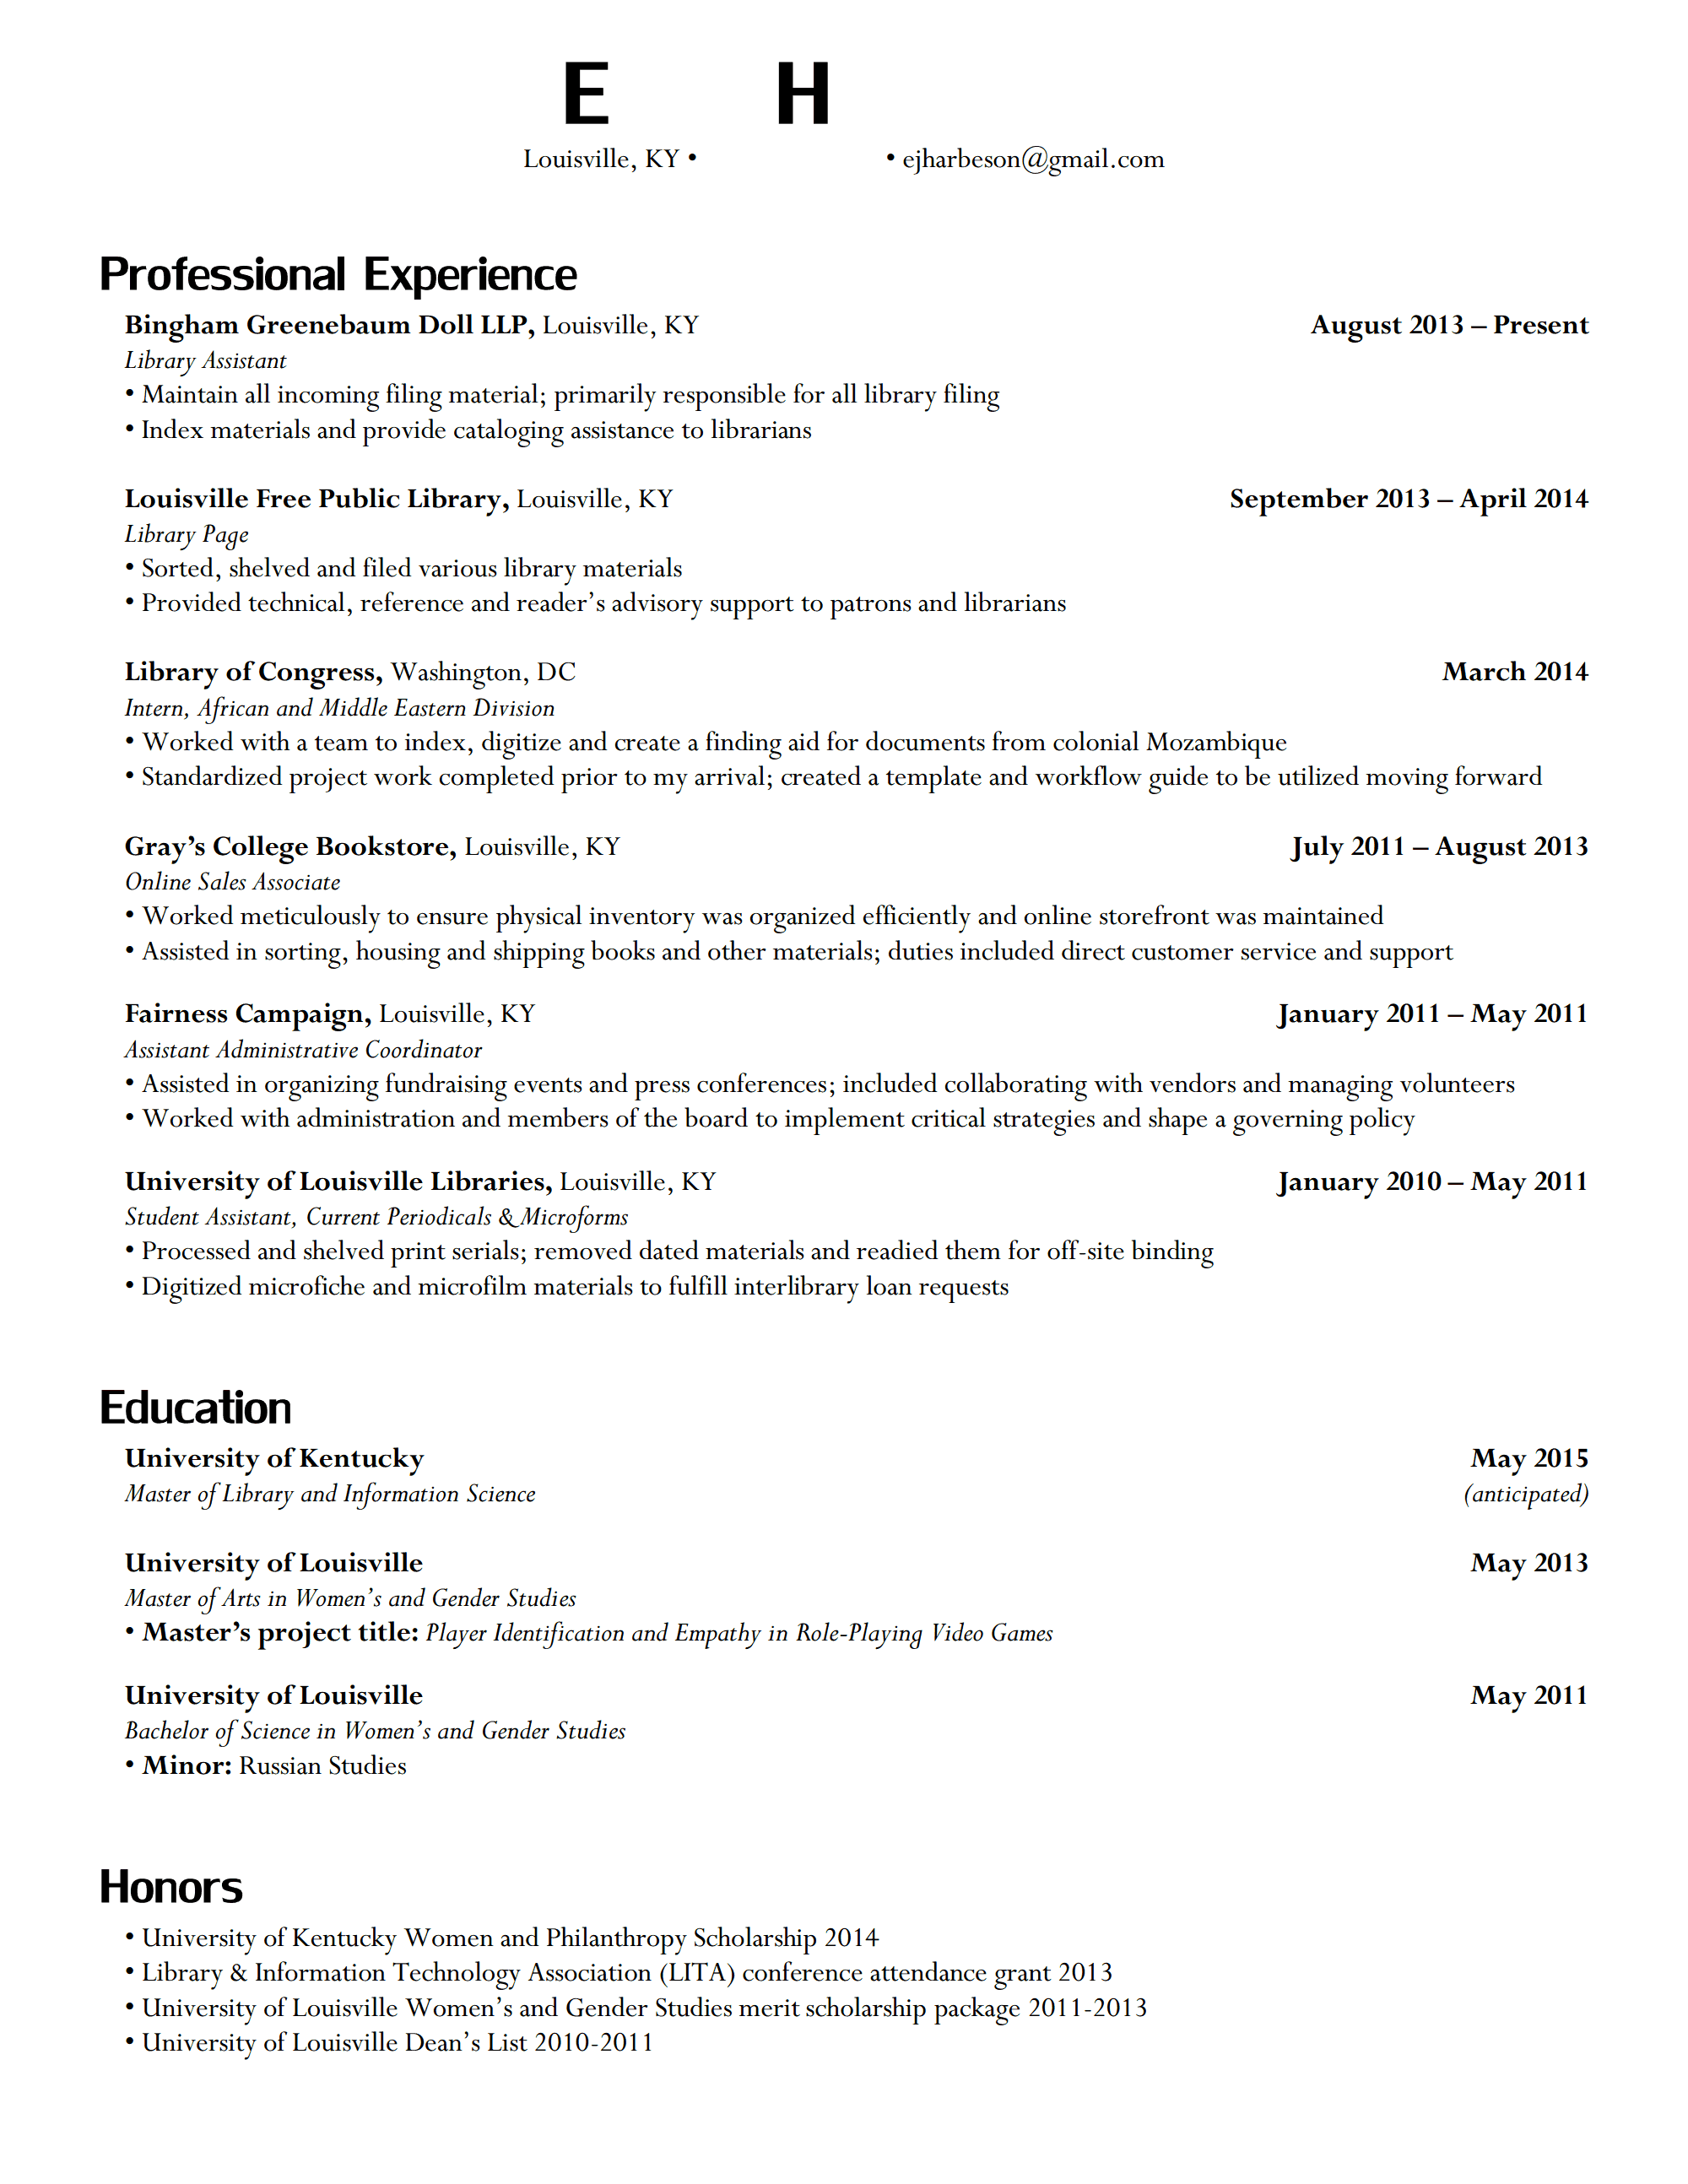 eh resume p1 - Sample School Librarian Resume